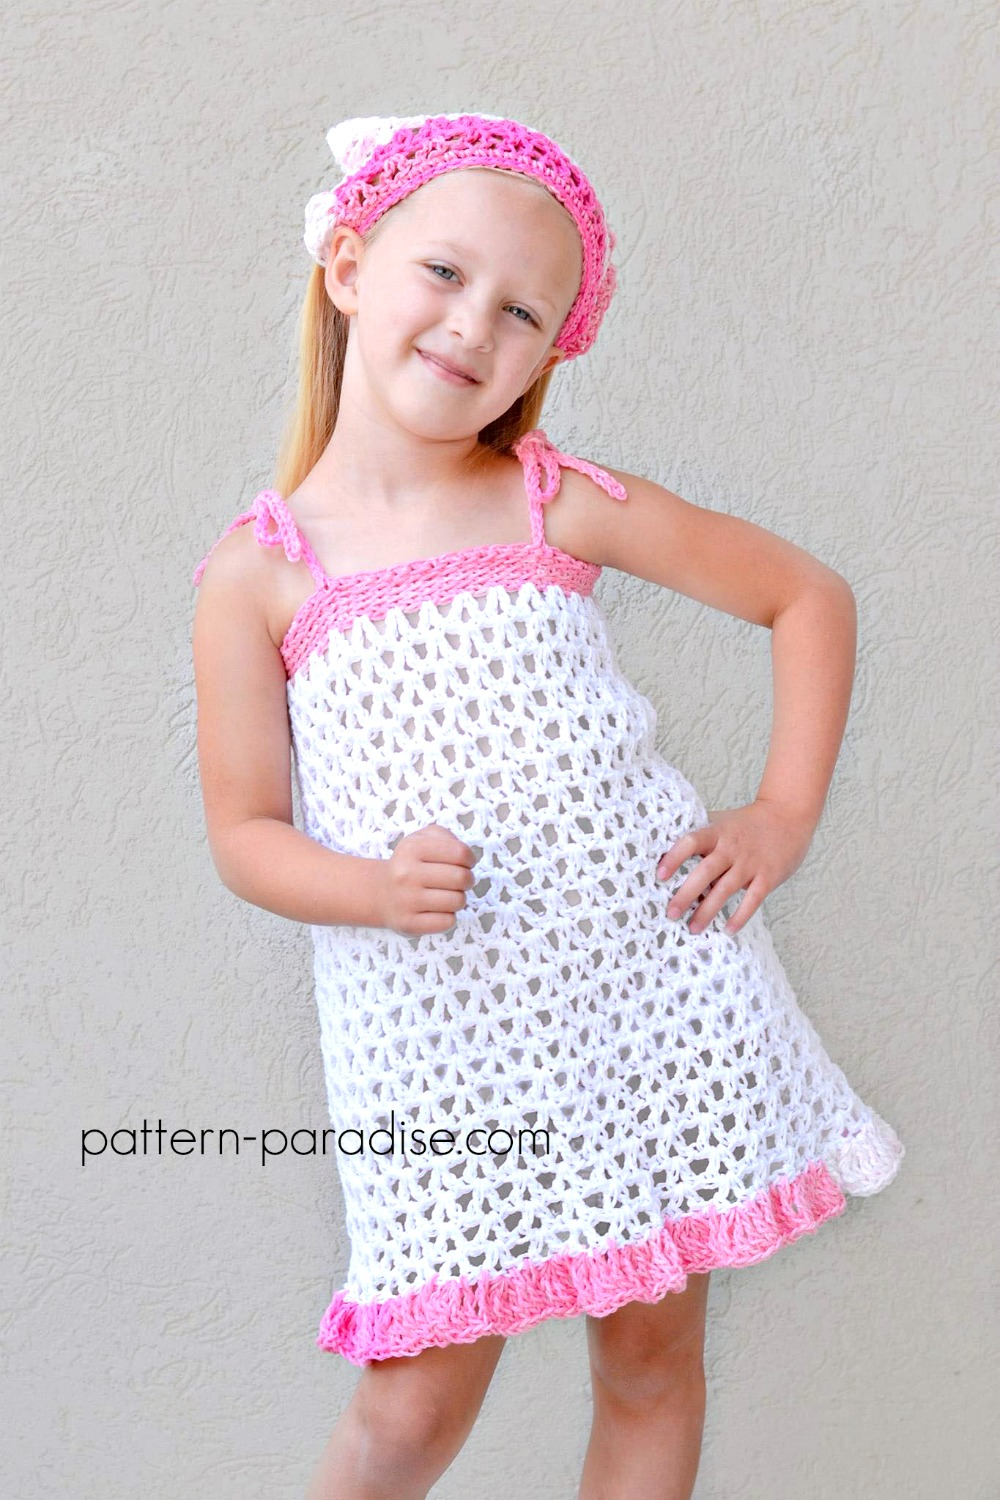 Free crochet pattern summer cheer dress and kerchief set free crochet pattern summer cheer dress and kerchief set bankloansurffo Image collections